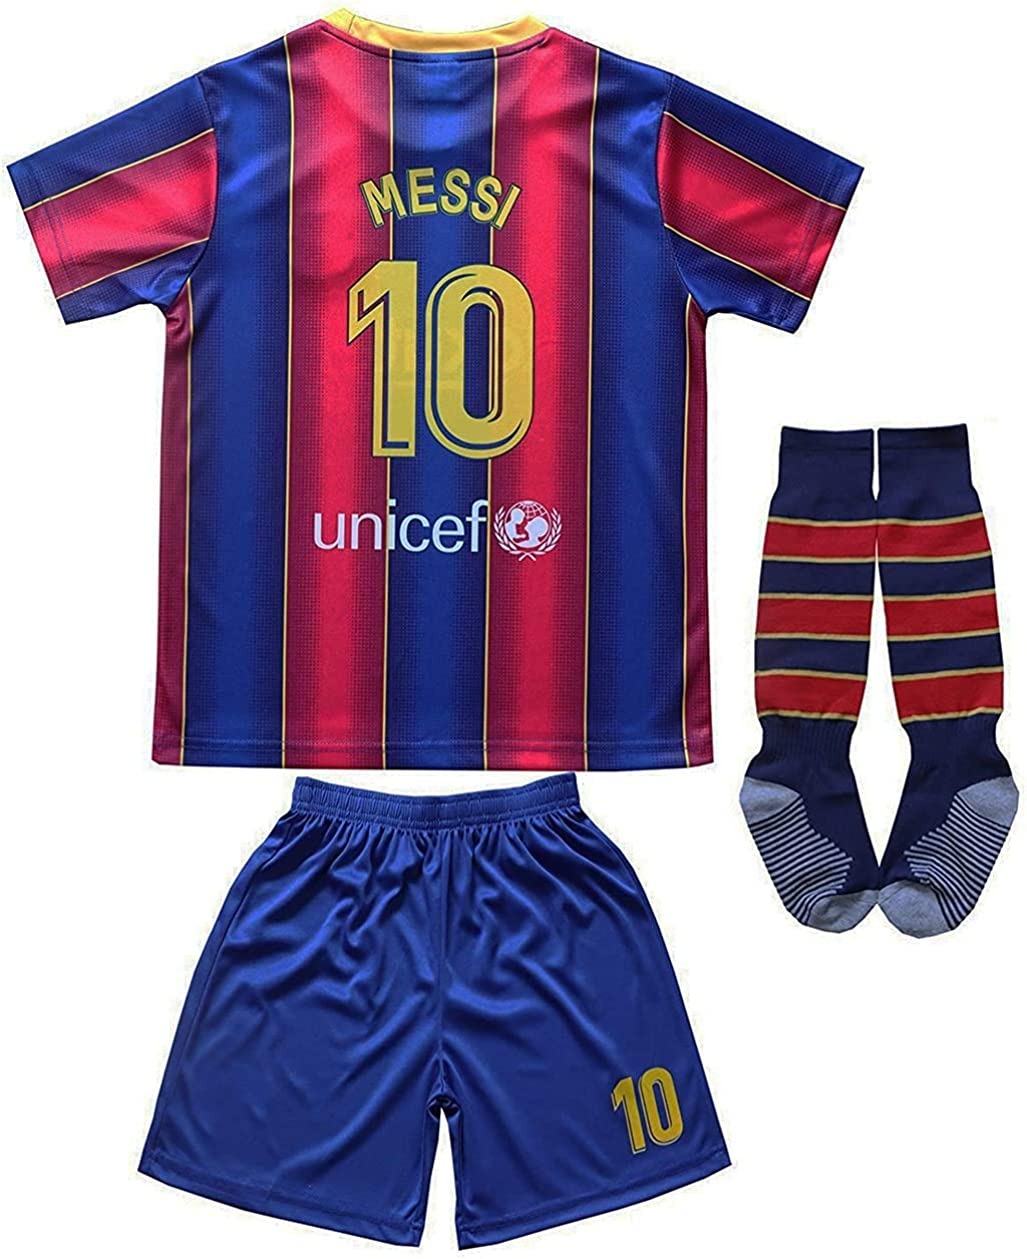 Da Games Youth Sportswear Barcelona Messi 10 Kids Home Soccer Jersey/Shorts Football Socks Set